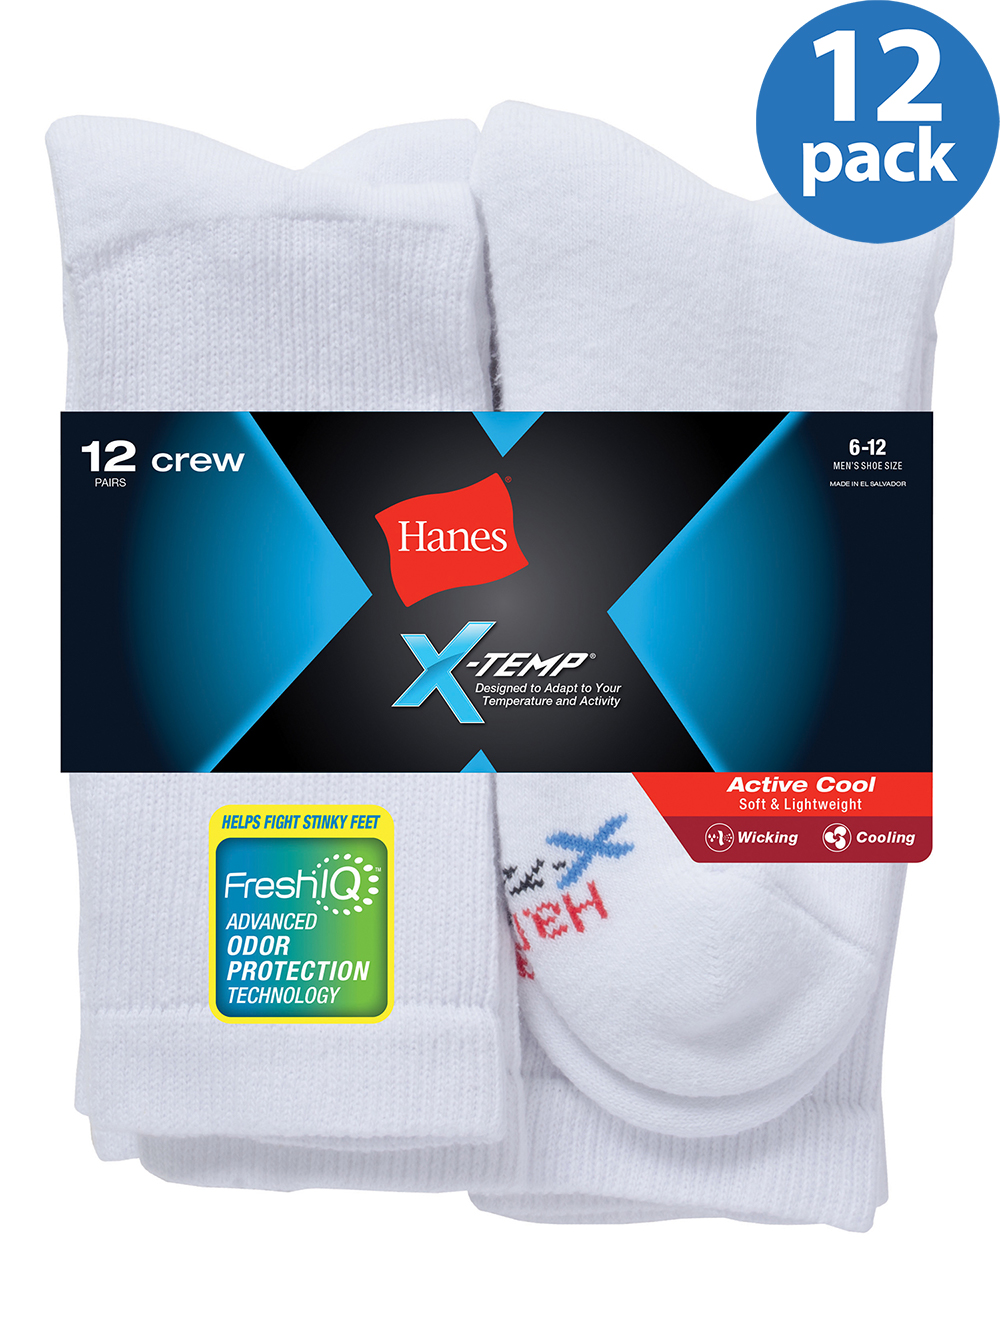 Men's X-Temp Active Cool Crew Socks-12 Pack